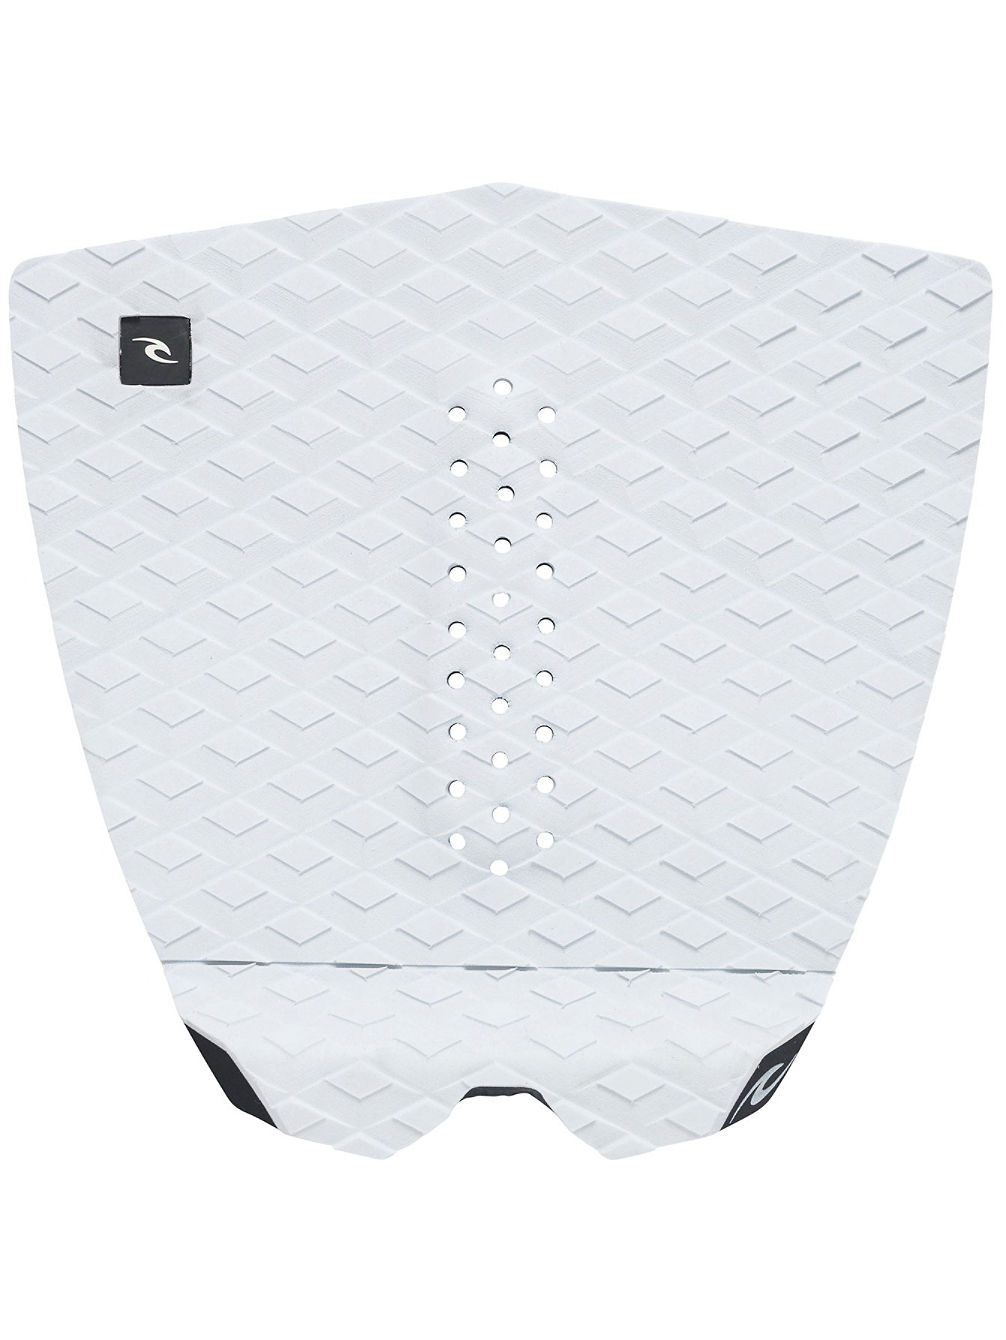 1 Piece Traction Tail Pad